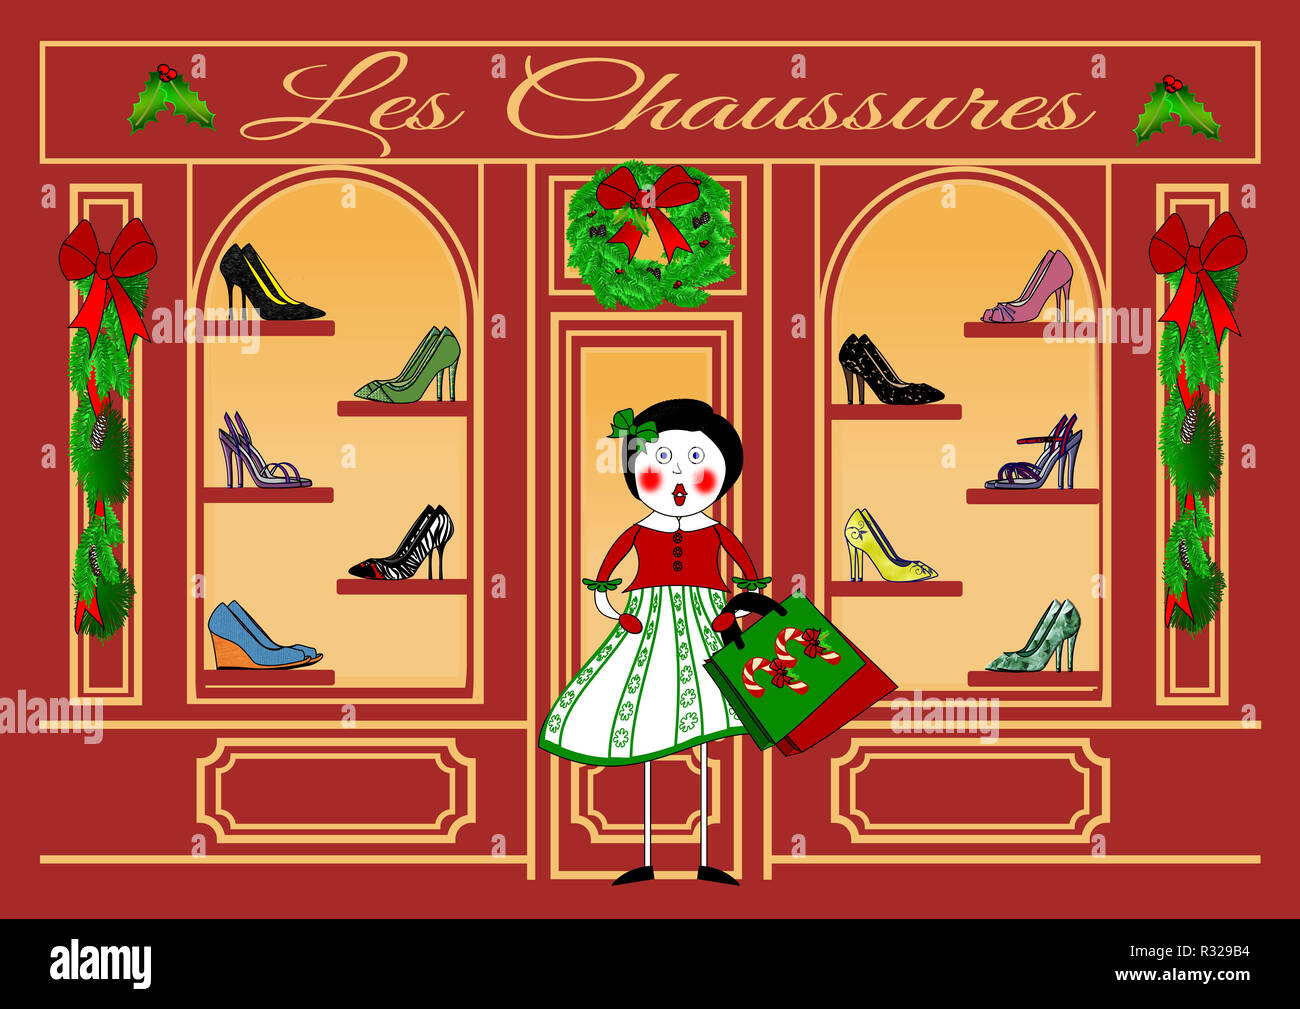 Christmas Shopping at Les Chaussures - Stock Image